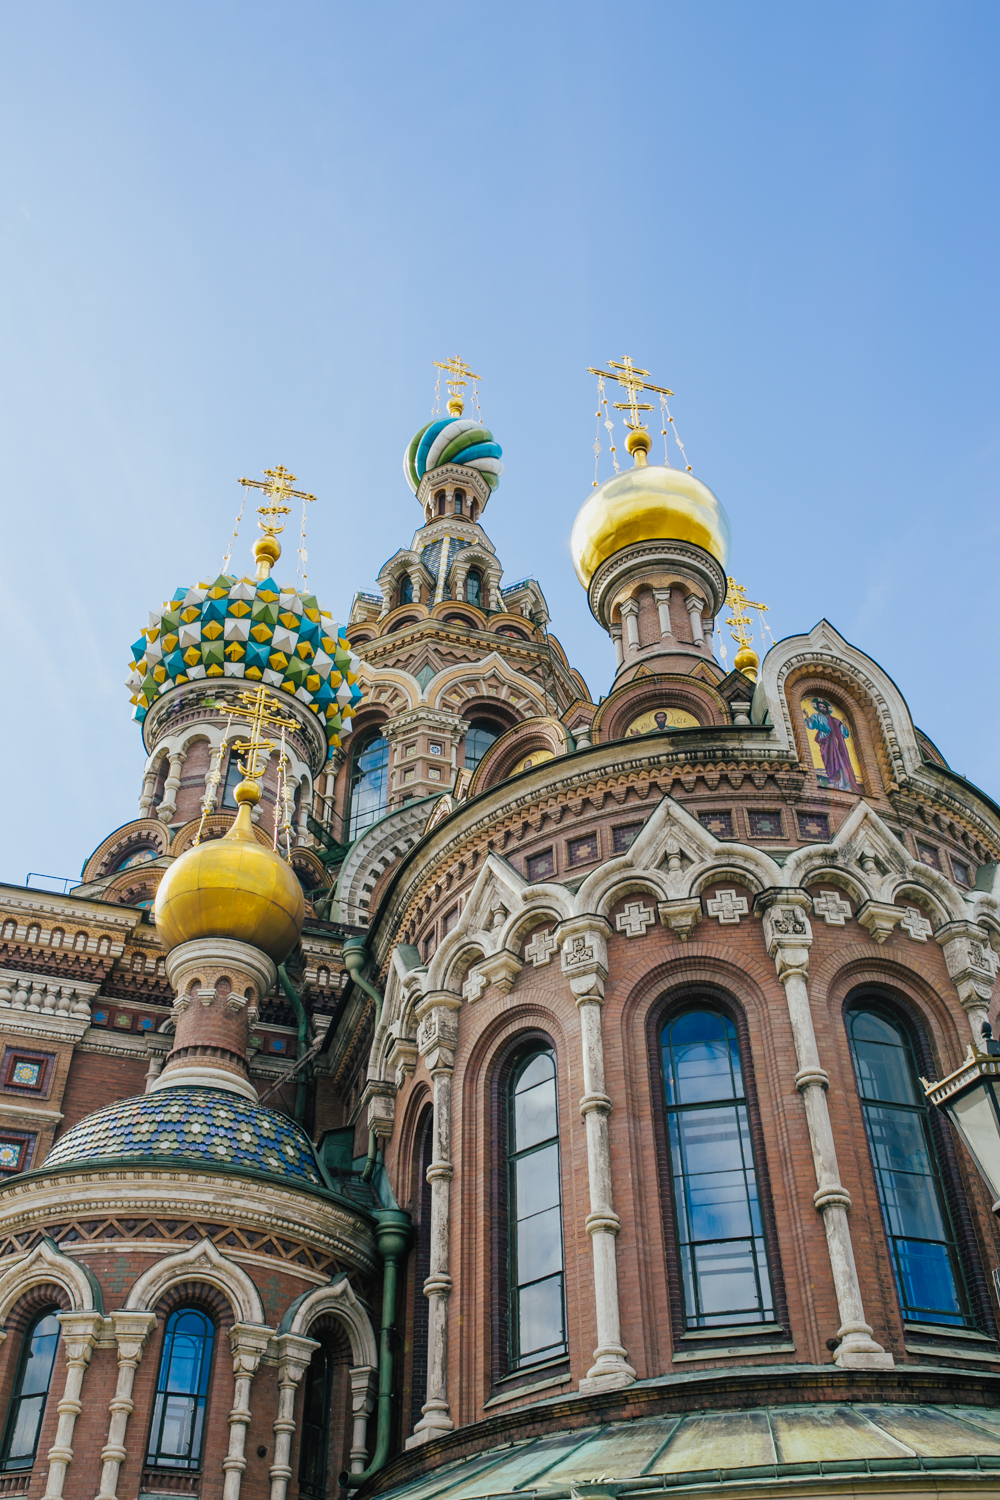 church-of-the-savior-on-spilled-blood-saint-petersburg-russia-city-guide-livvyland-blog-olivia-watson-austin-texas-travel-fashion-blog-blogger-princess-cruises-scandinavia-baltic-sea-4